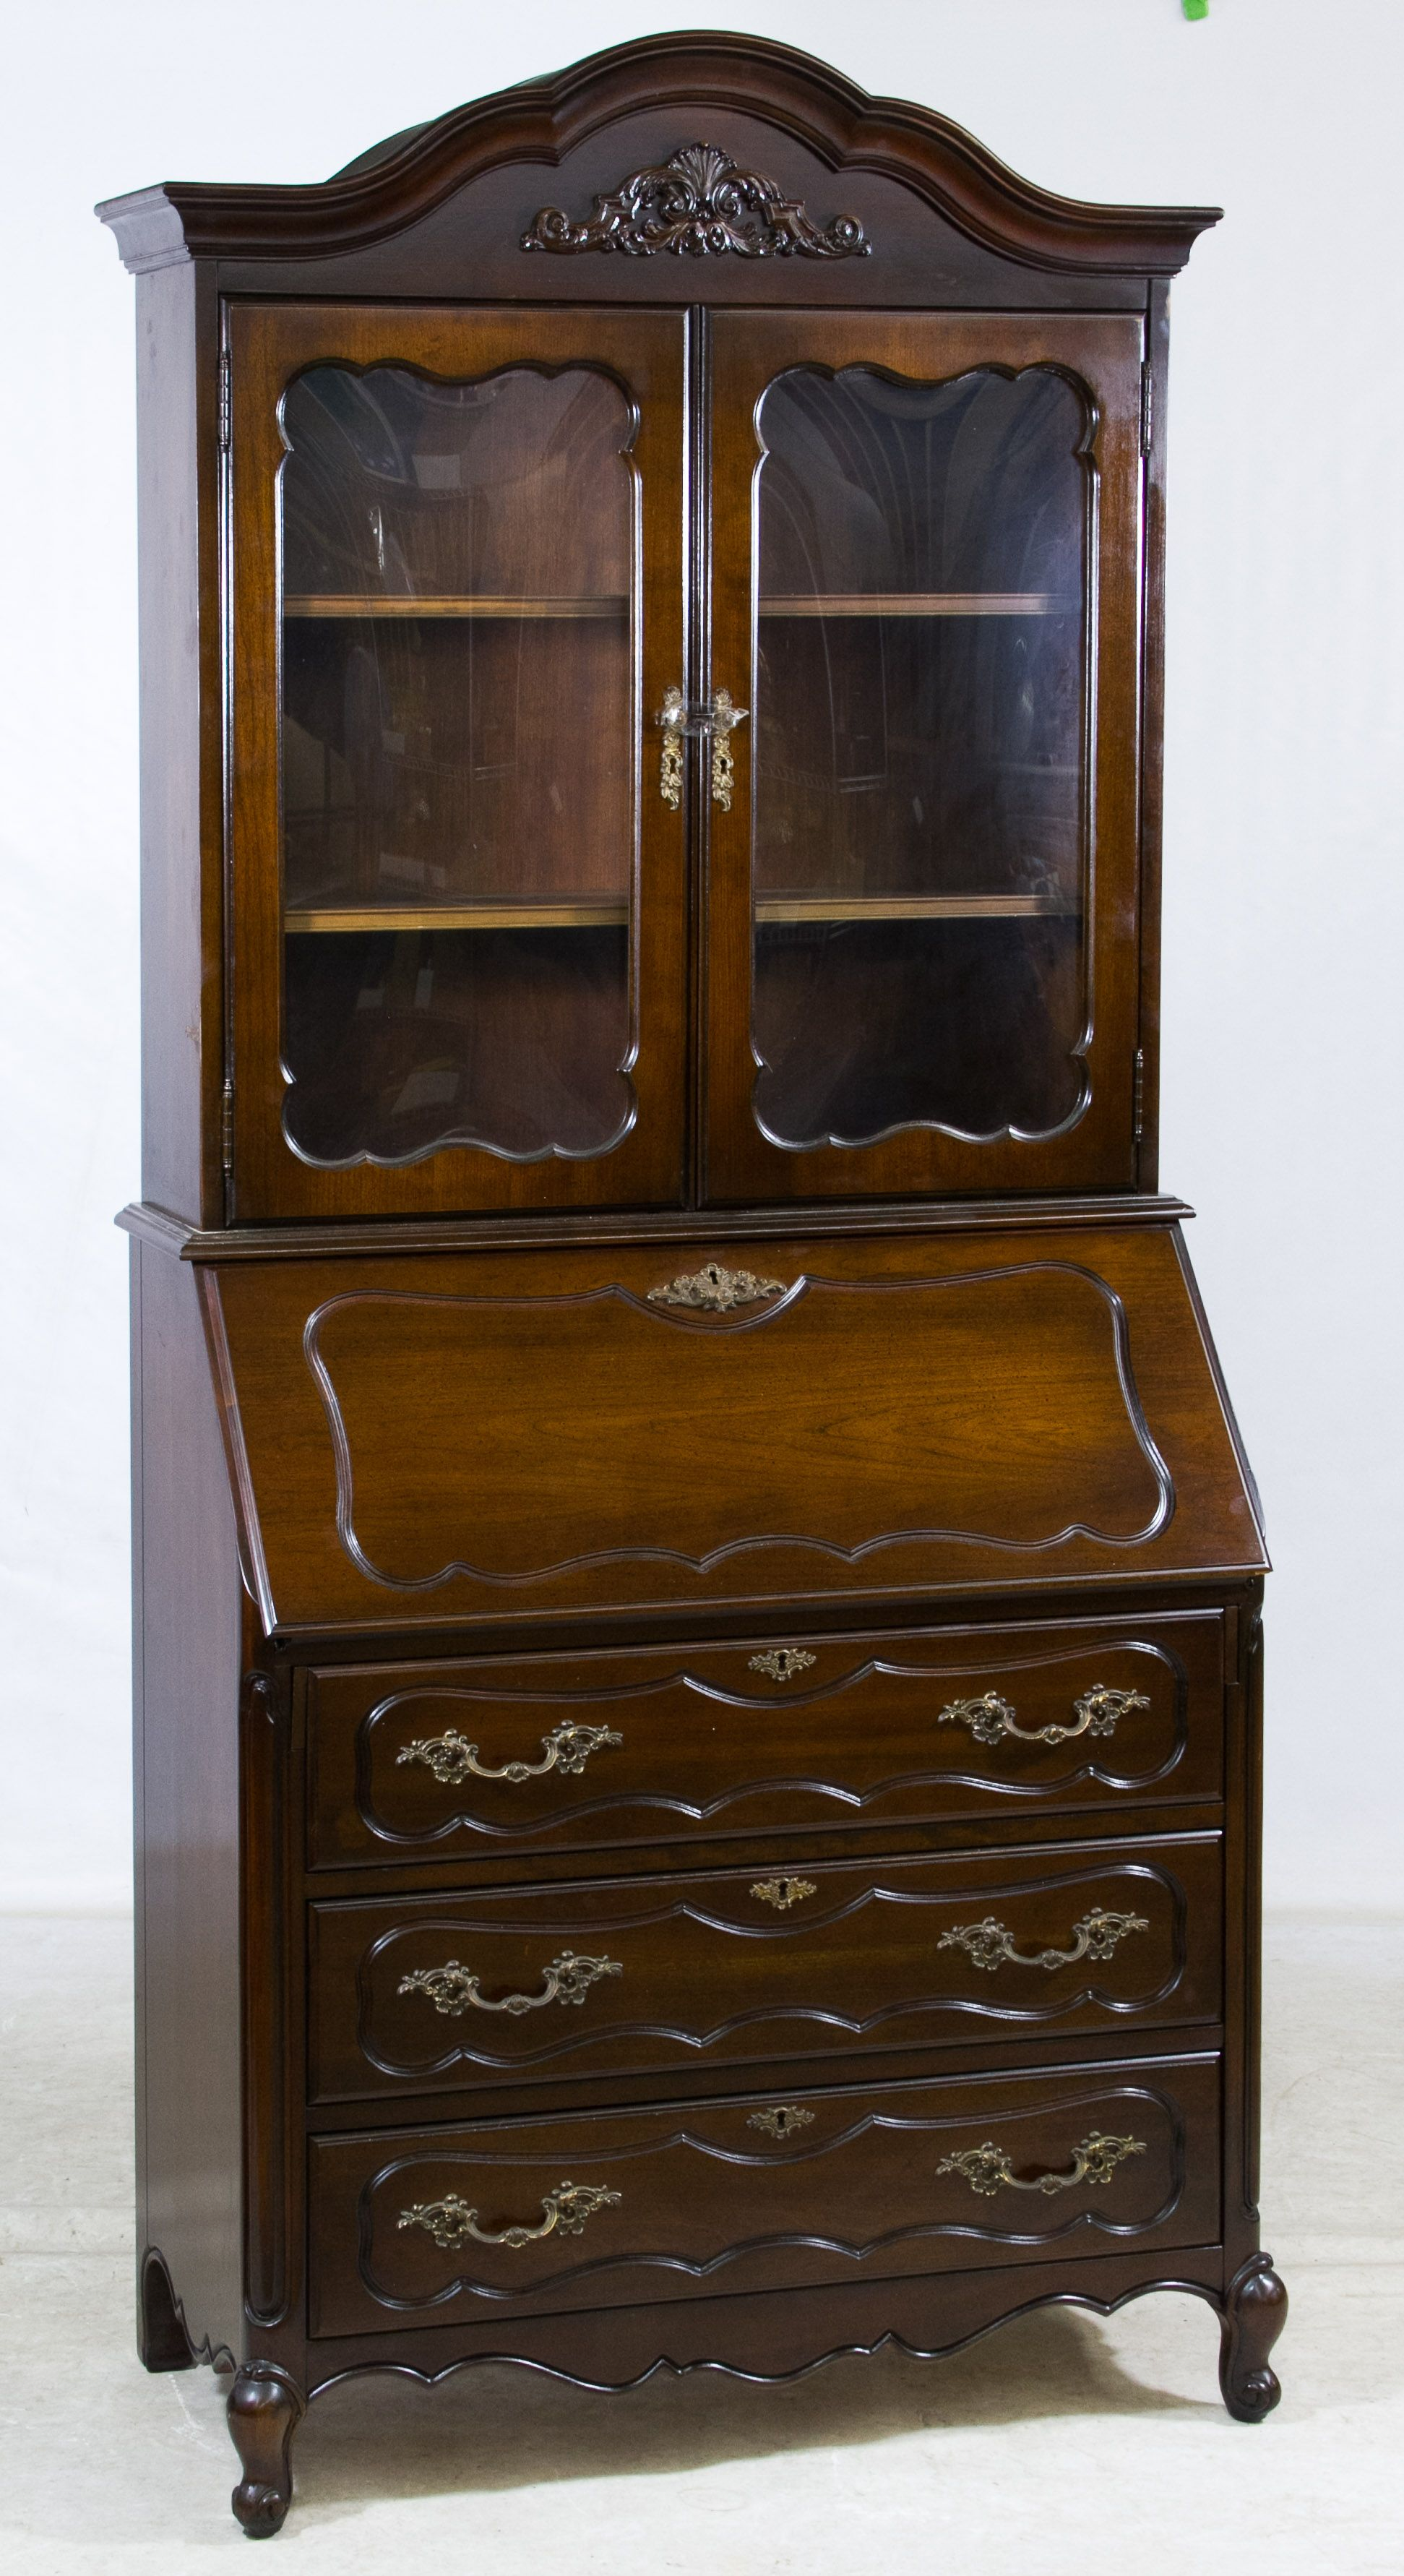 Lot 112 Walnut Stained Secretary by Jasper Having two wood framed